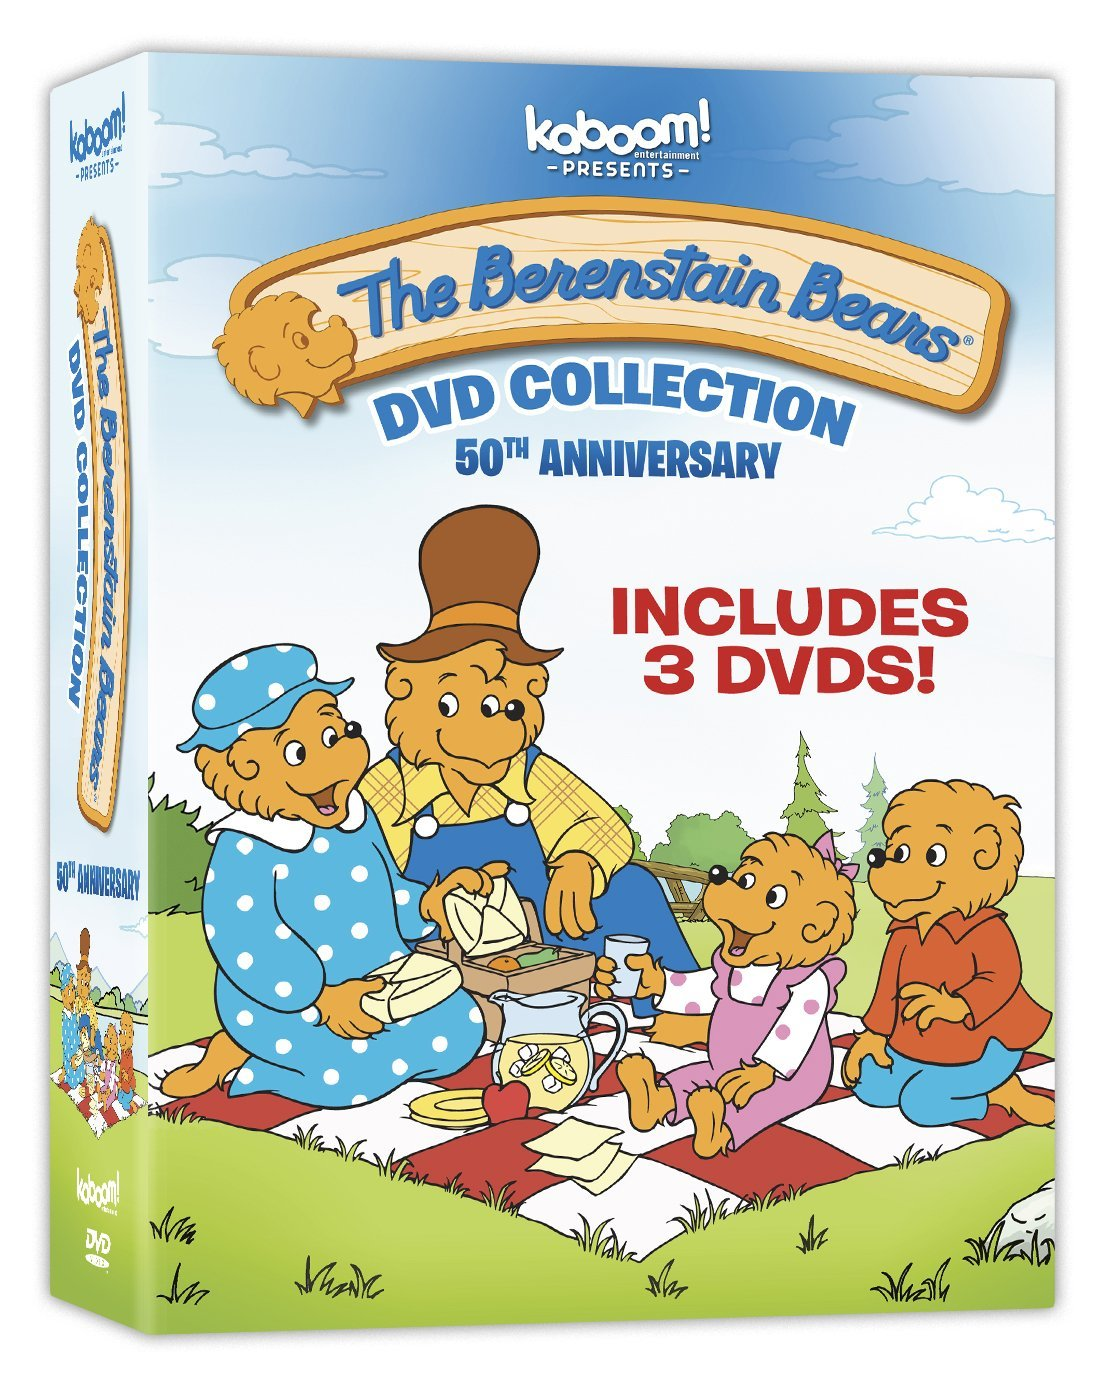 Inspired by savannah last minute easter gift ideas the berenstain last minute easter gift ideas the berenstain bears dvd collection review negle Images